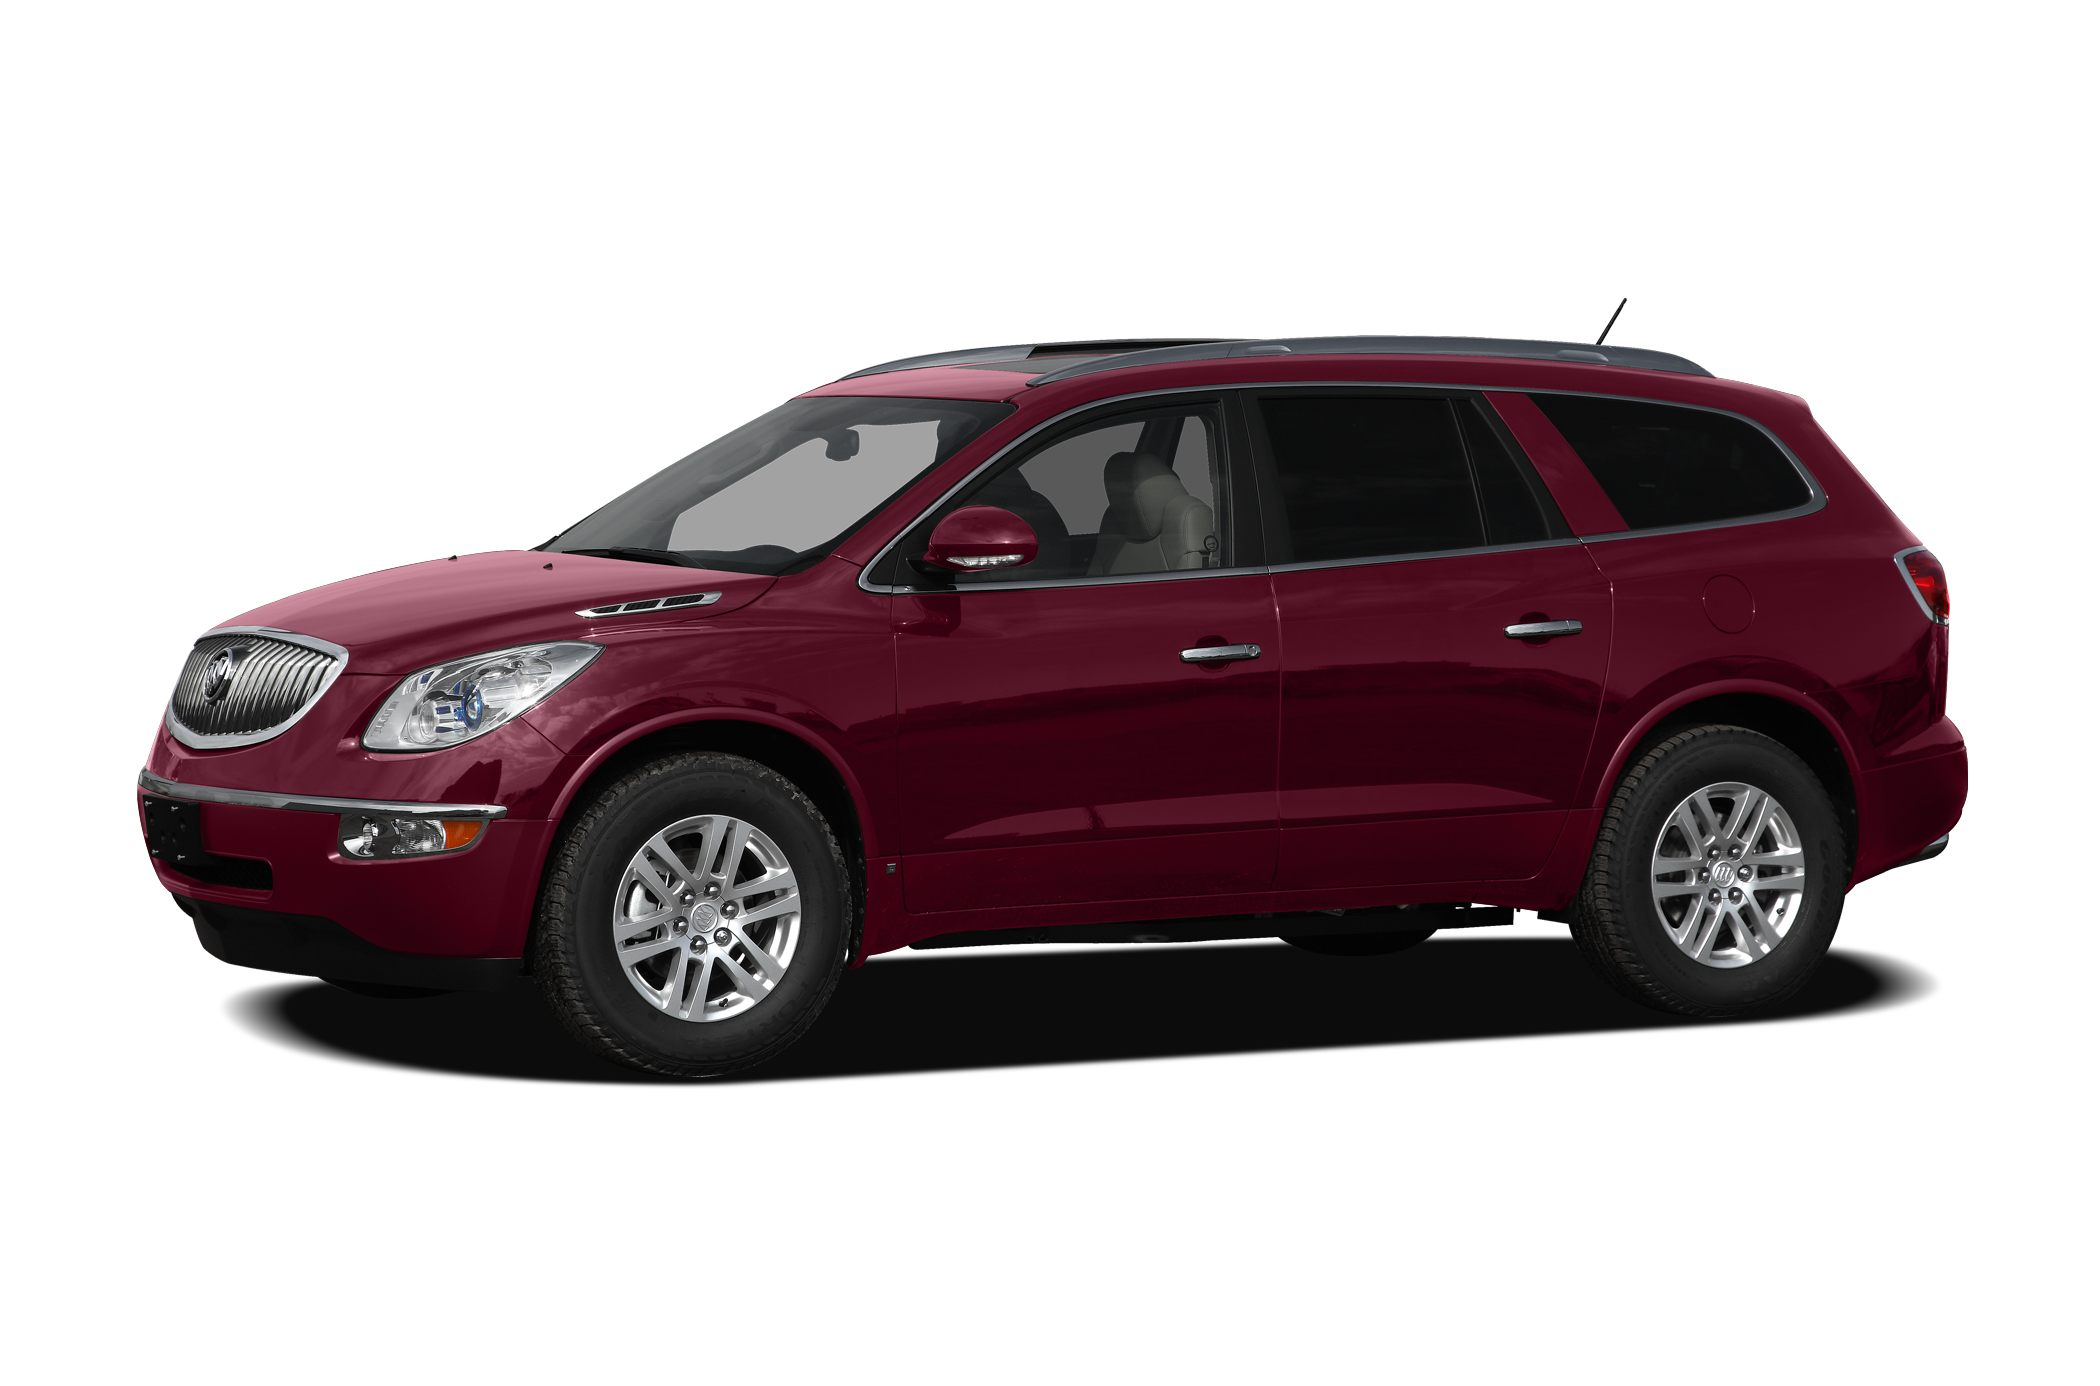 2011 Buick Enclave 2XL If you are interested in this vehicleand have questions or need informatio